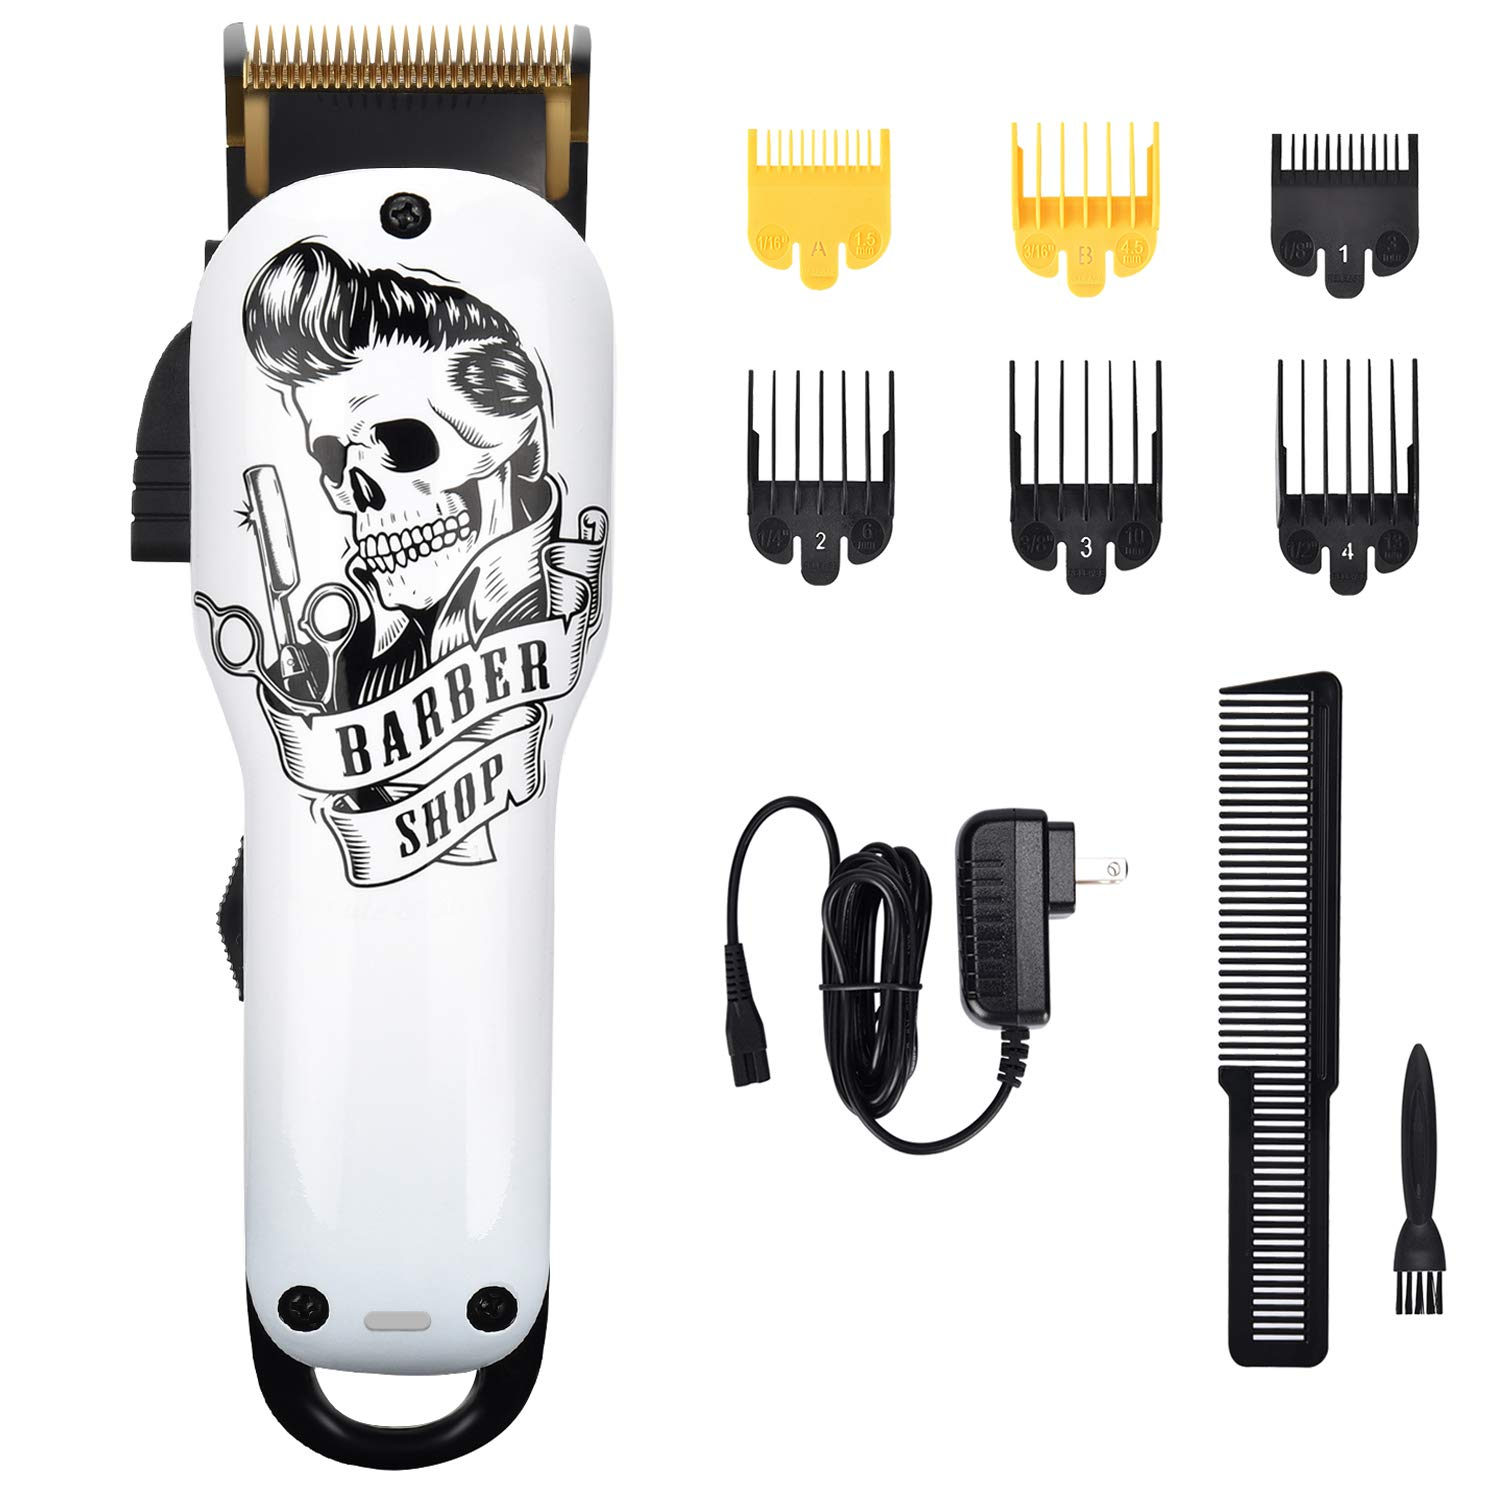 Professional Cordless Hair Clippers